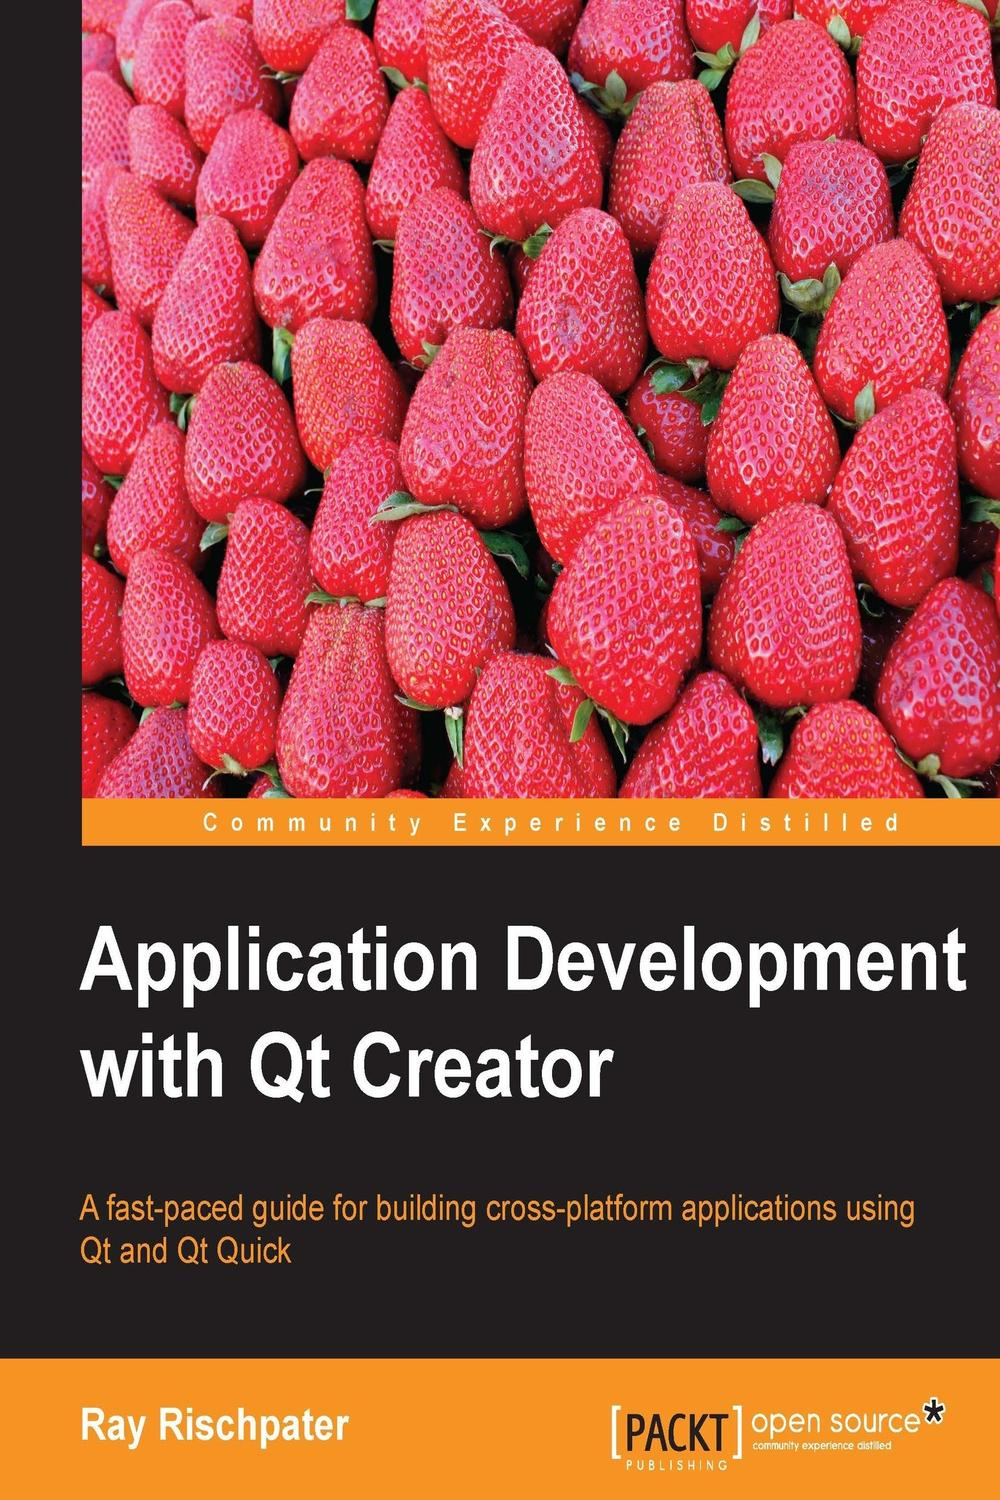 Application Development with Qt Creator by Ray Rischpater